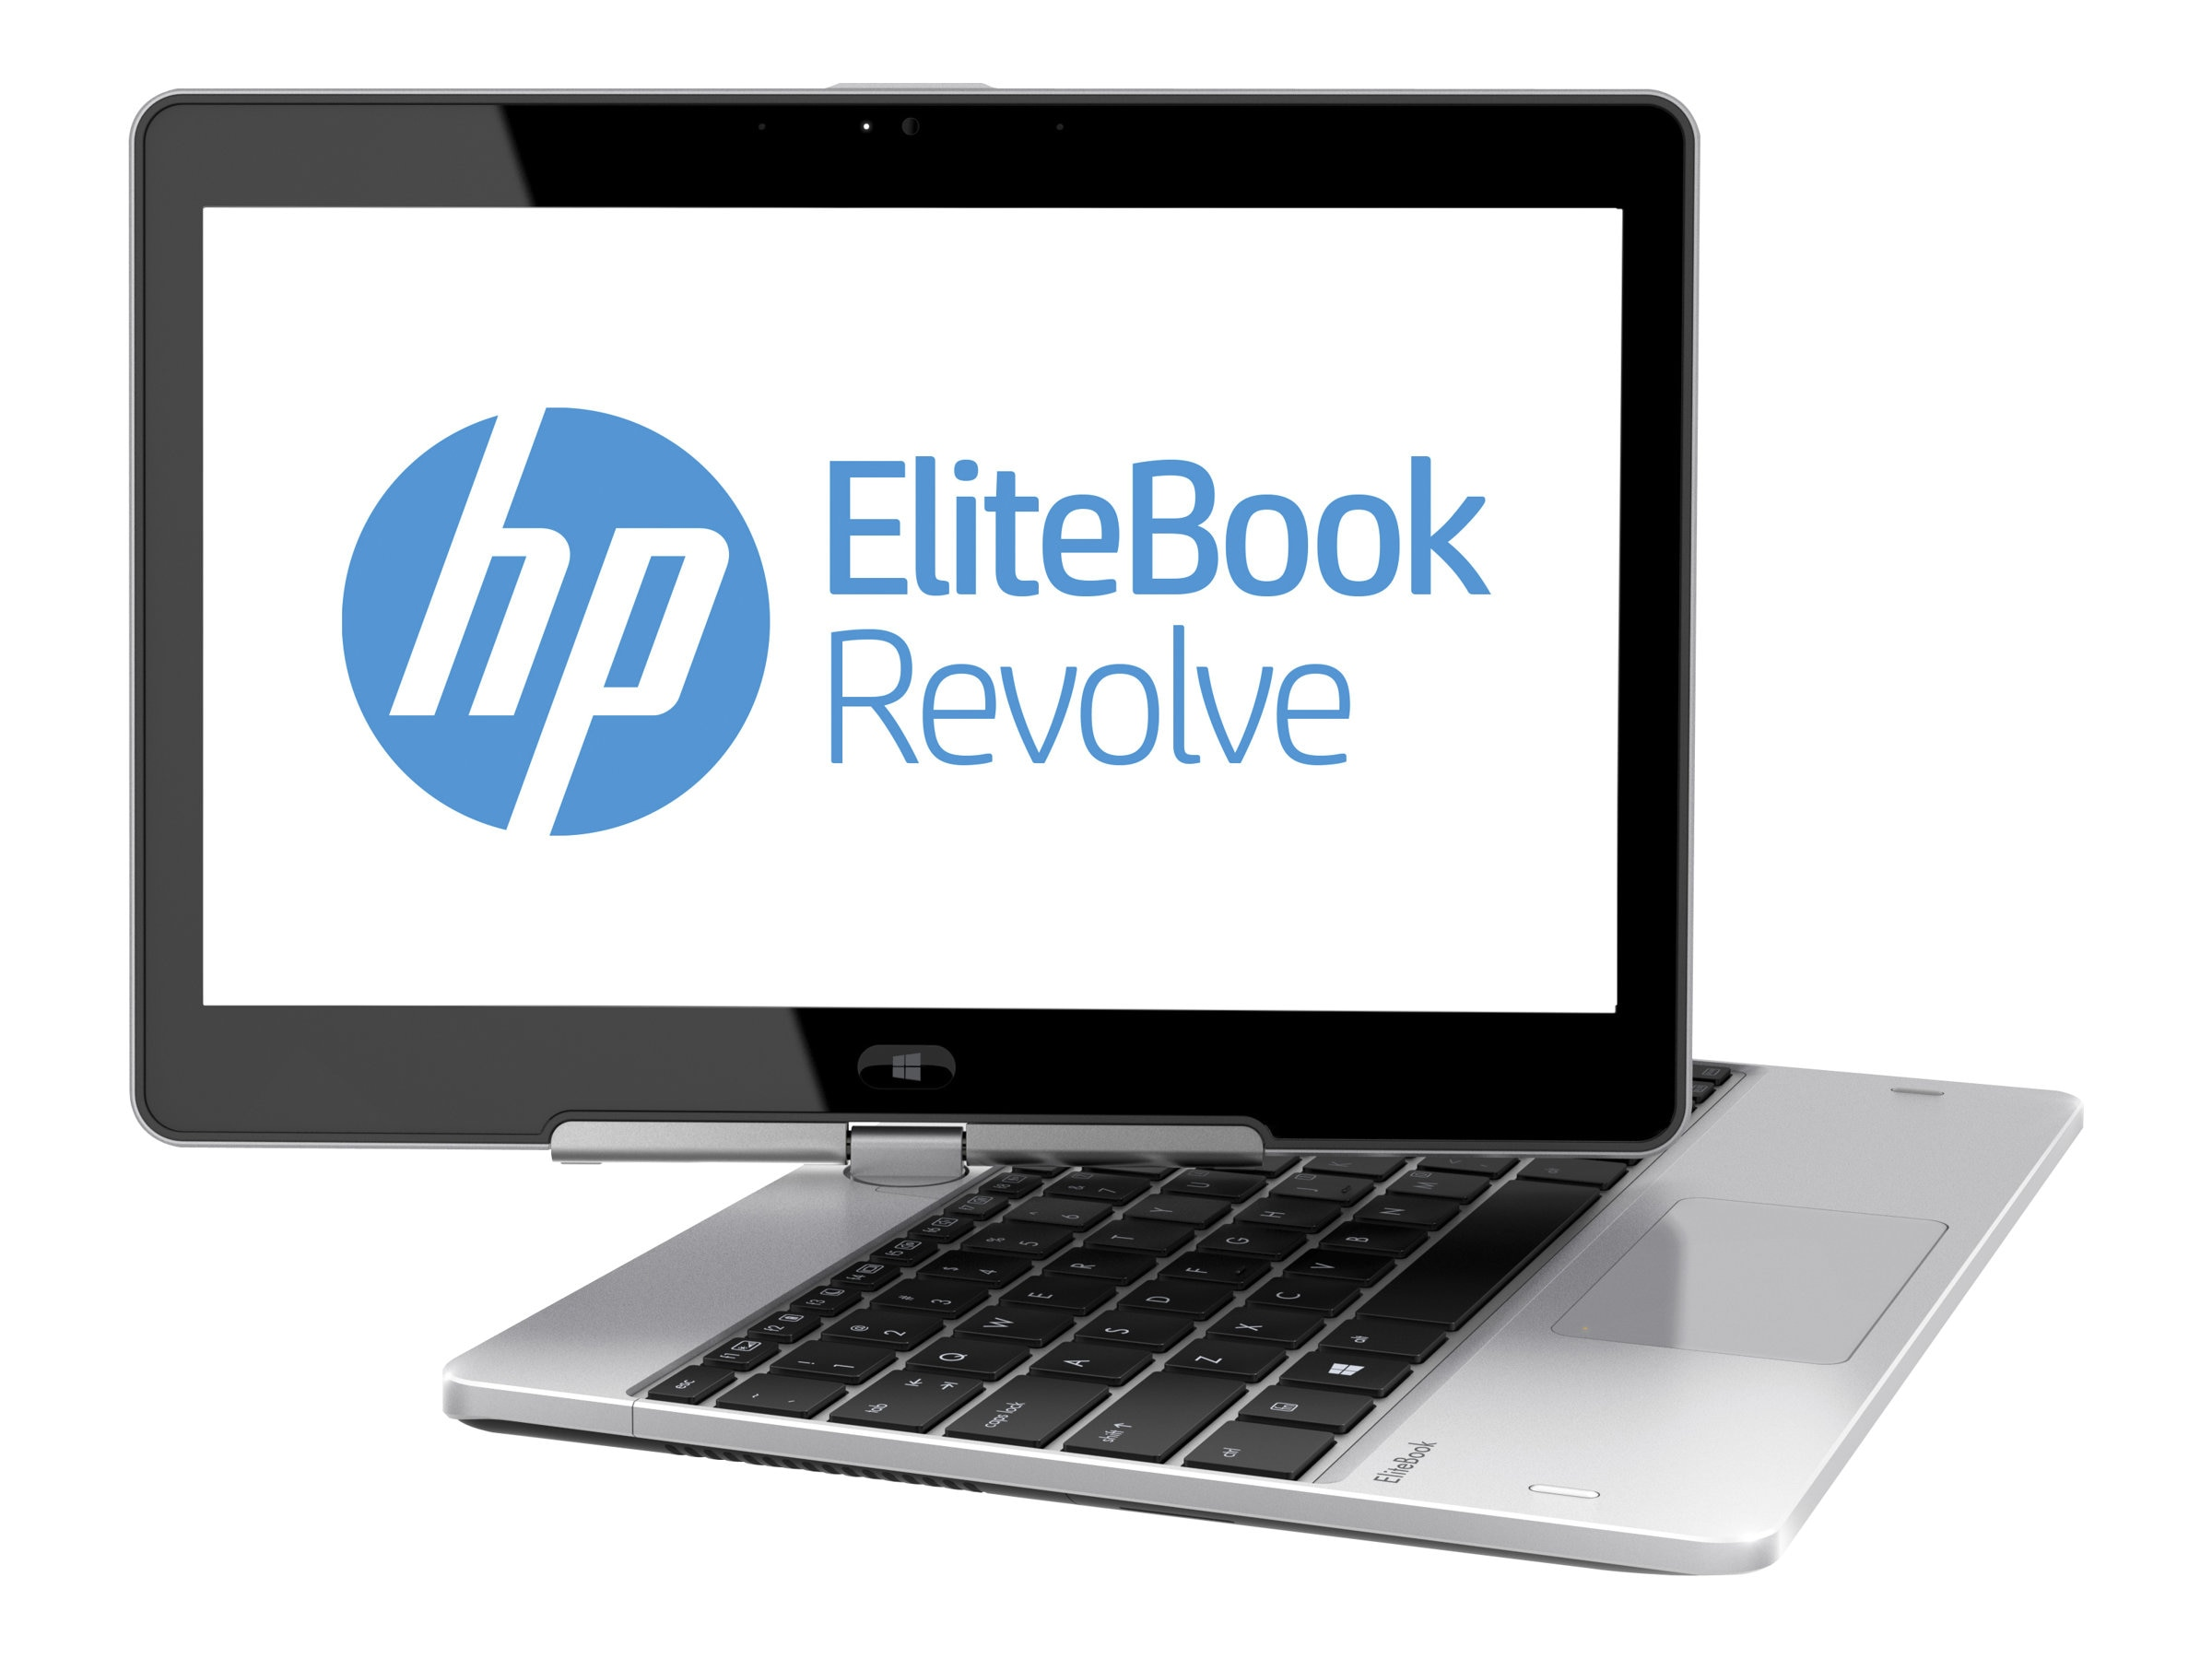 HP EliteBook Revolve 810 Core i5-3437U 1.9GHz 4GB 256GB SSD abgn NIC BT 56k WC 11.6 HD MT W7P64, D7P56AW#ABA